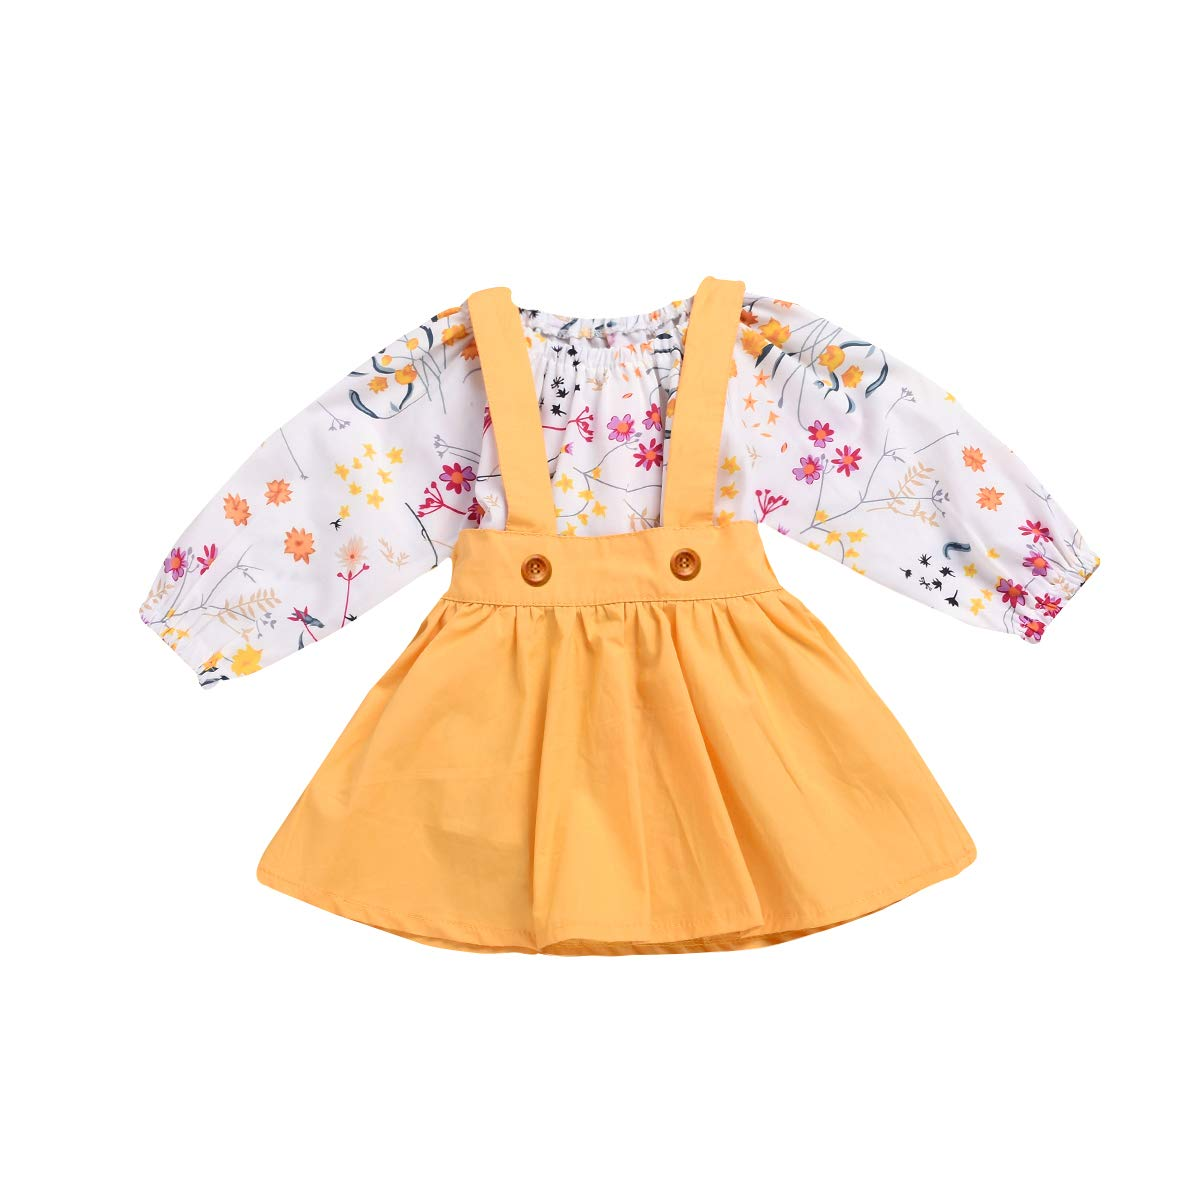 Baby Girl Fall Clothes Newborn Girls Floral Suspenders Long Sleeve Bodysuit + Golden Skirt Outfit Set